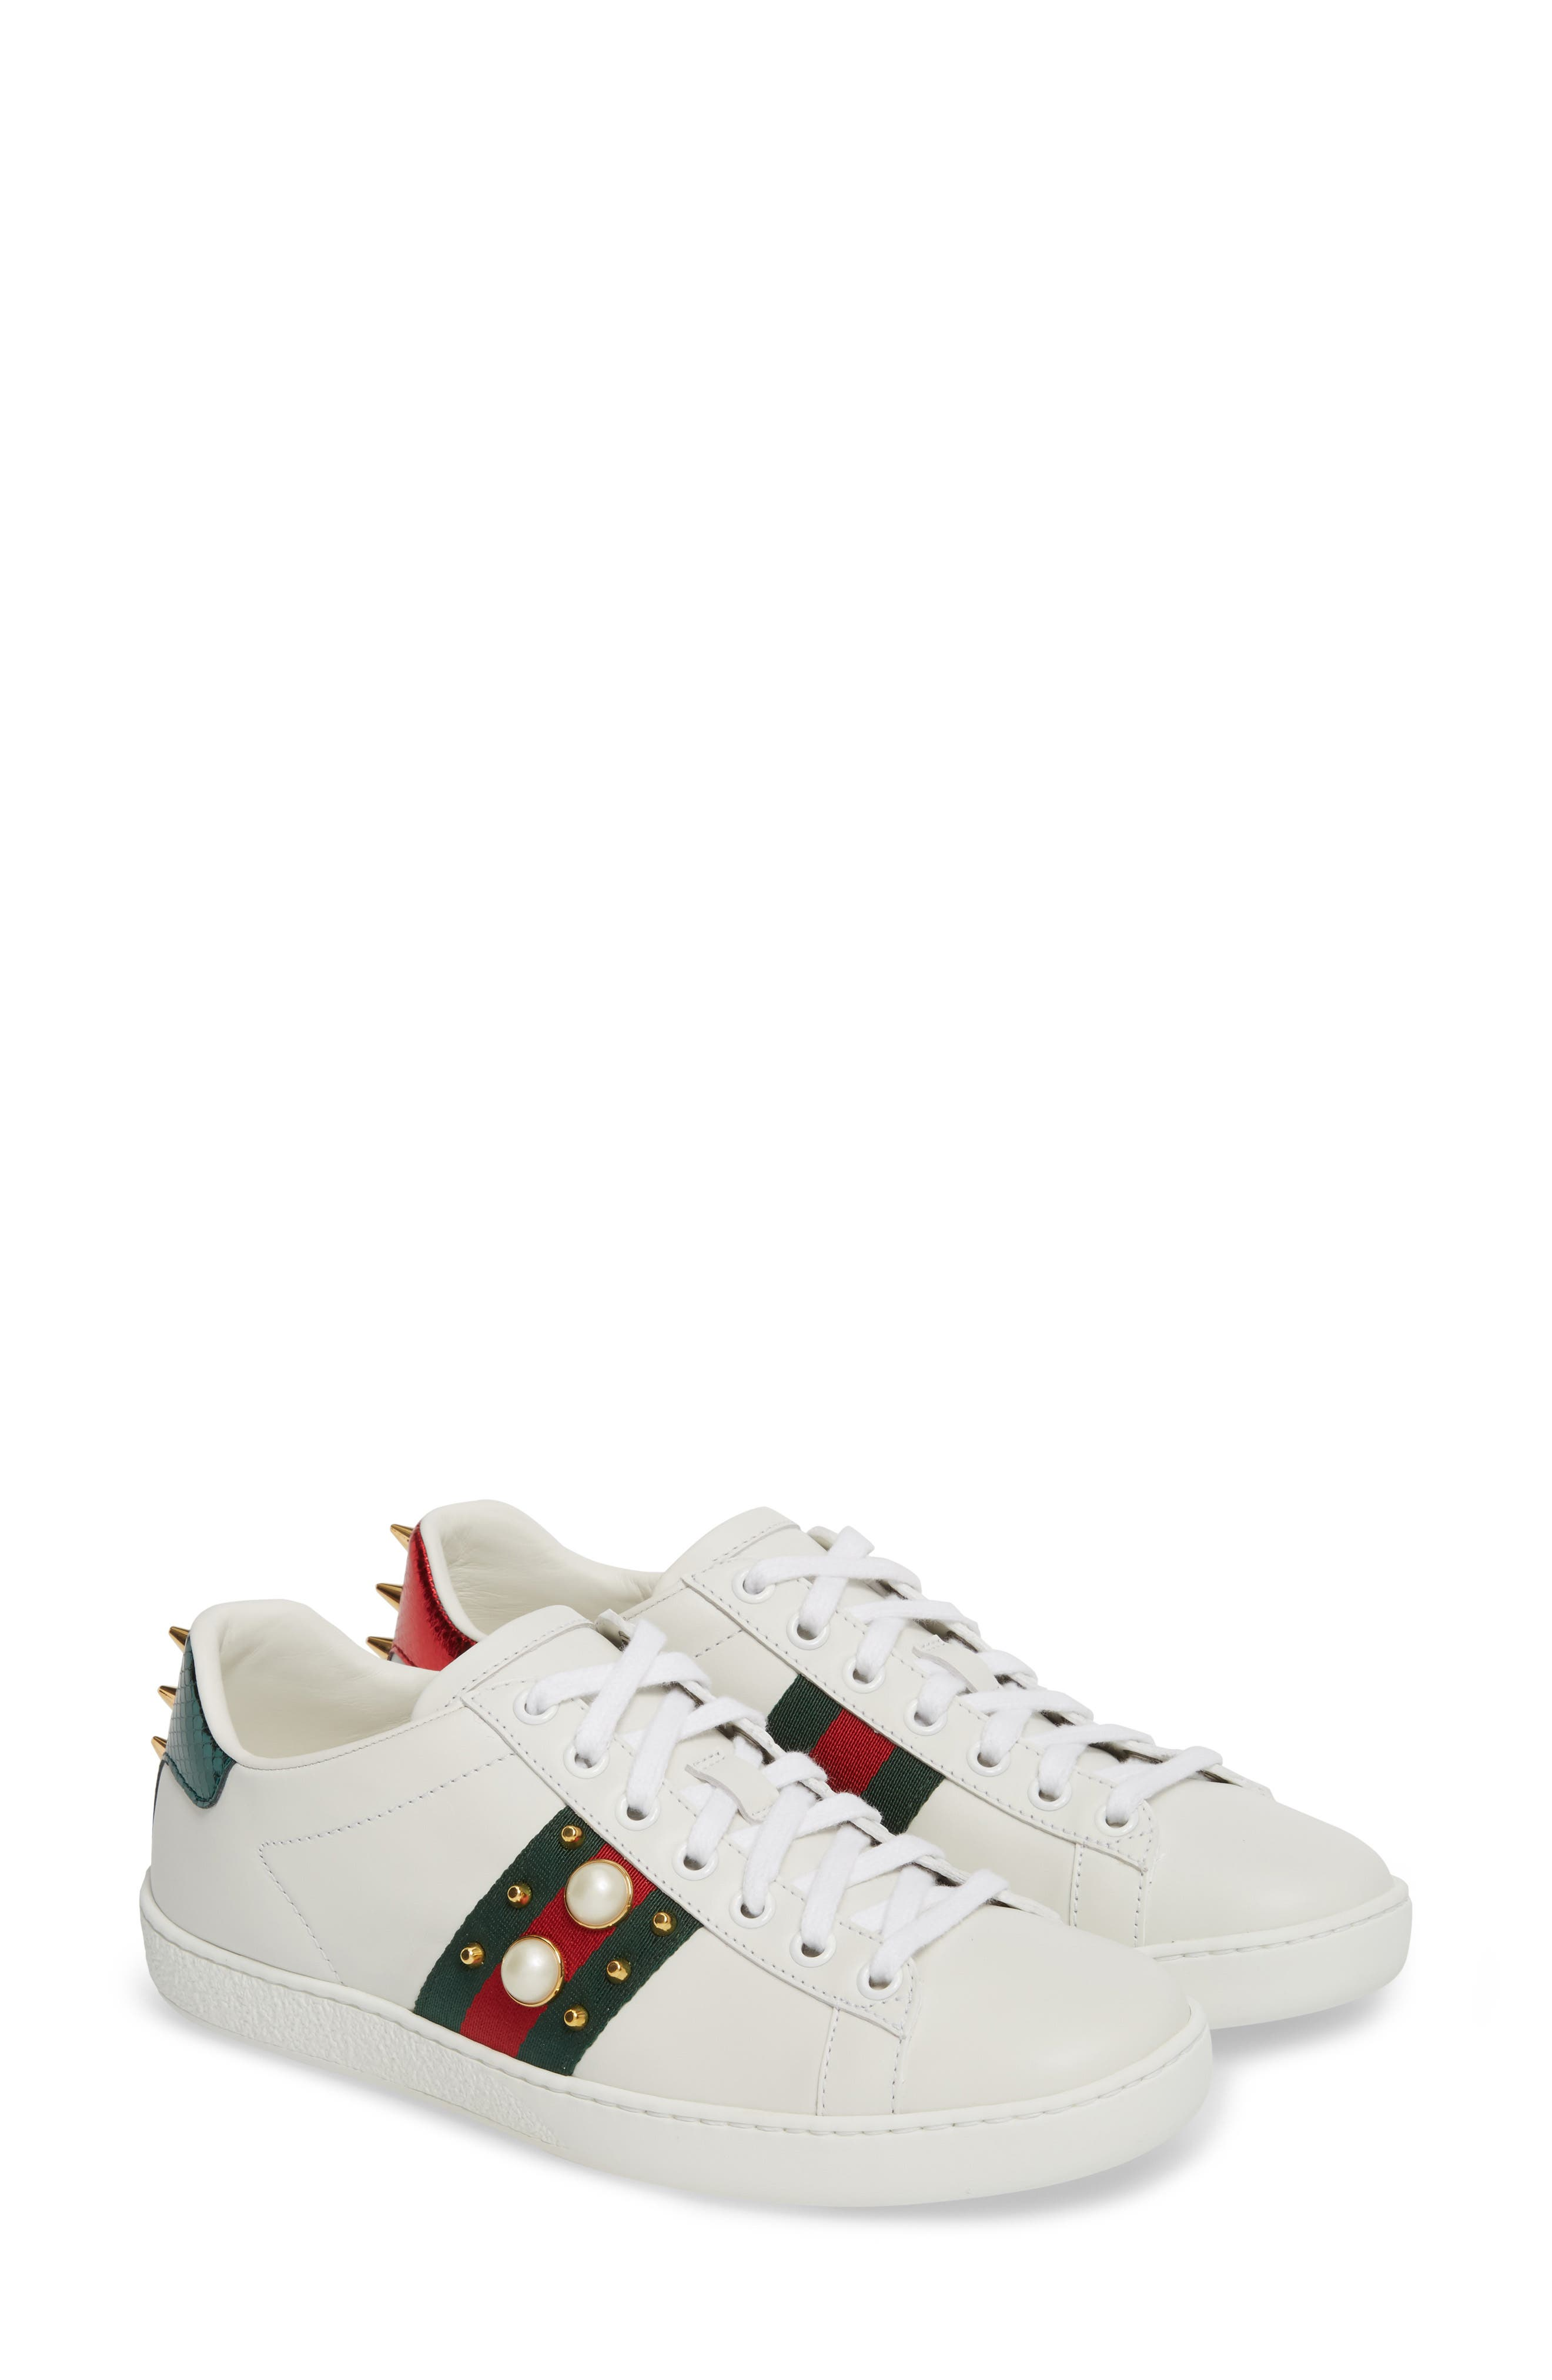 'New Ace' Low Top Sneaker,                             Main thumbnail 1, color,                             WHITE/ RED